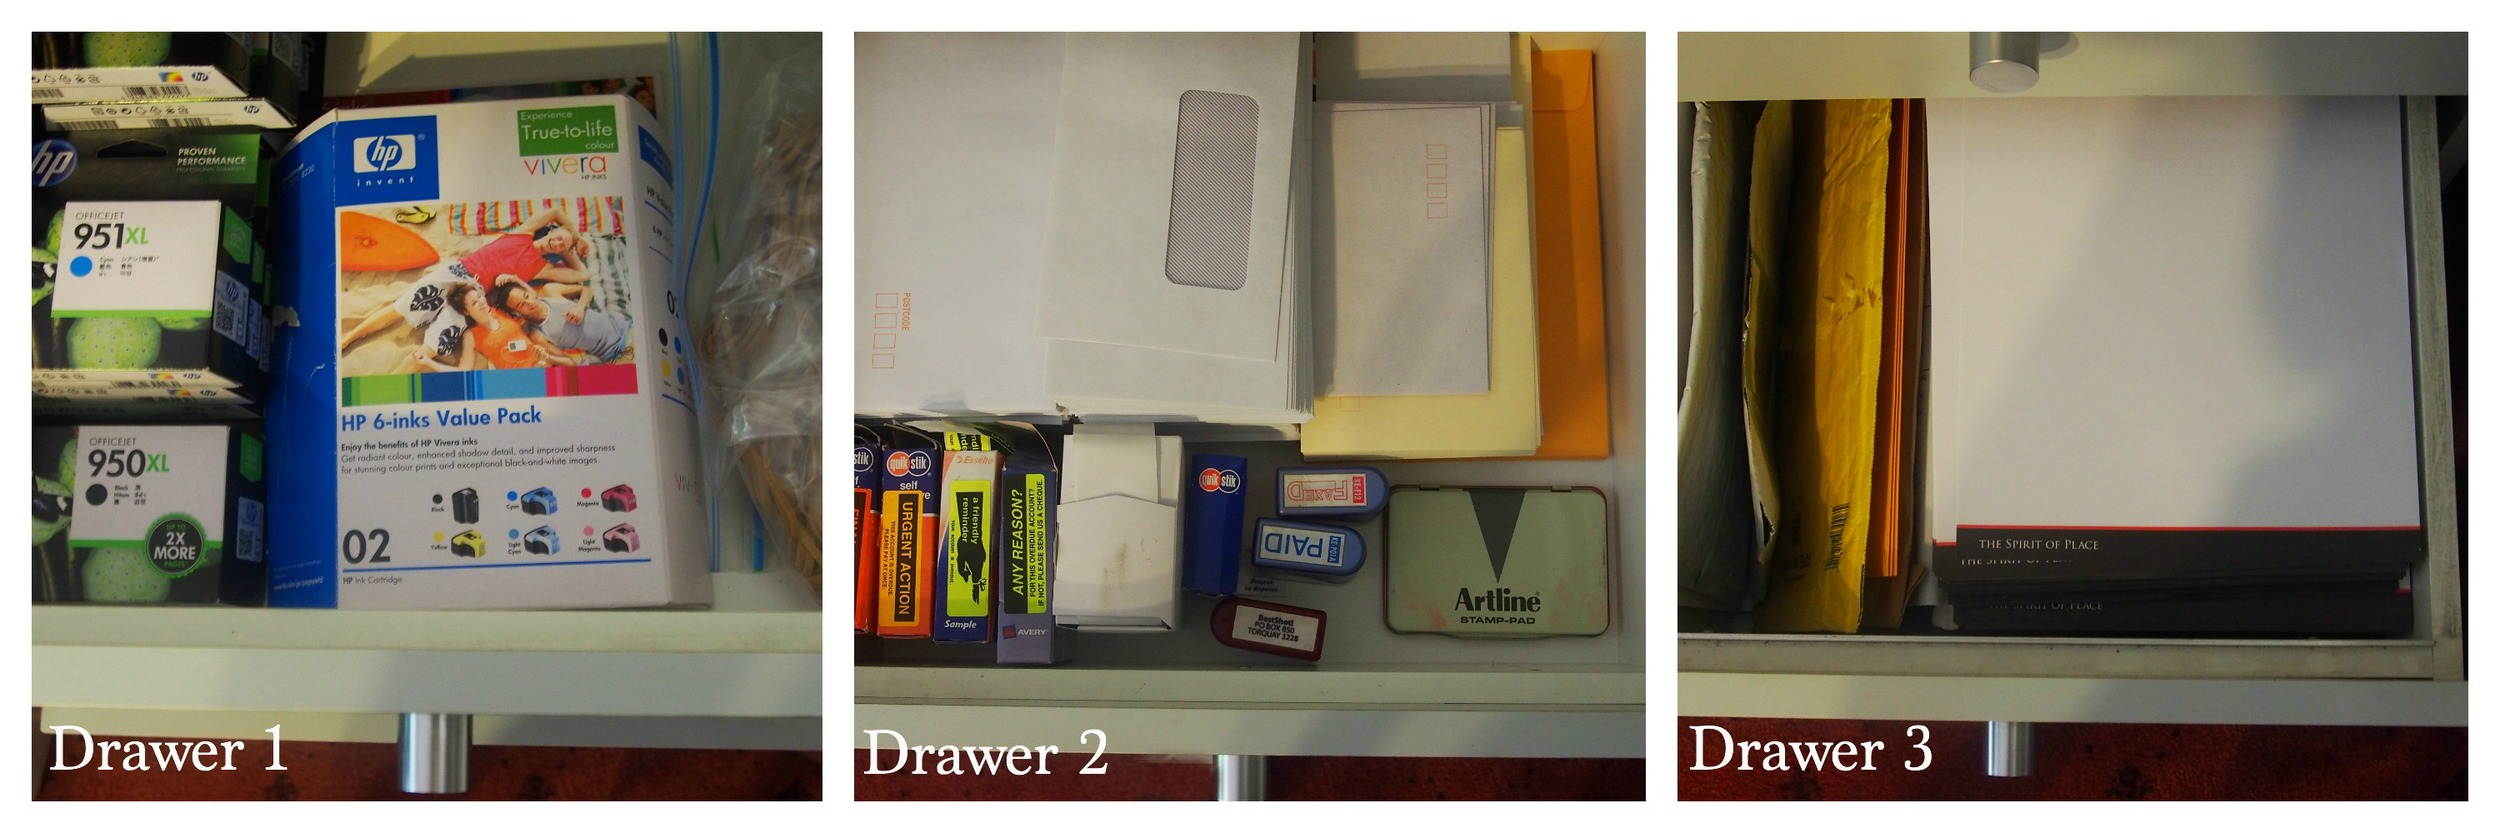 stationery drawers organised